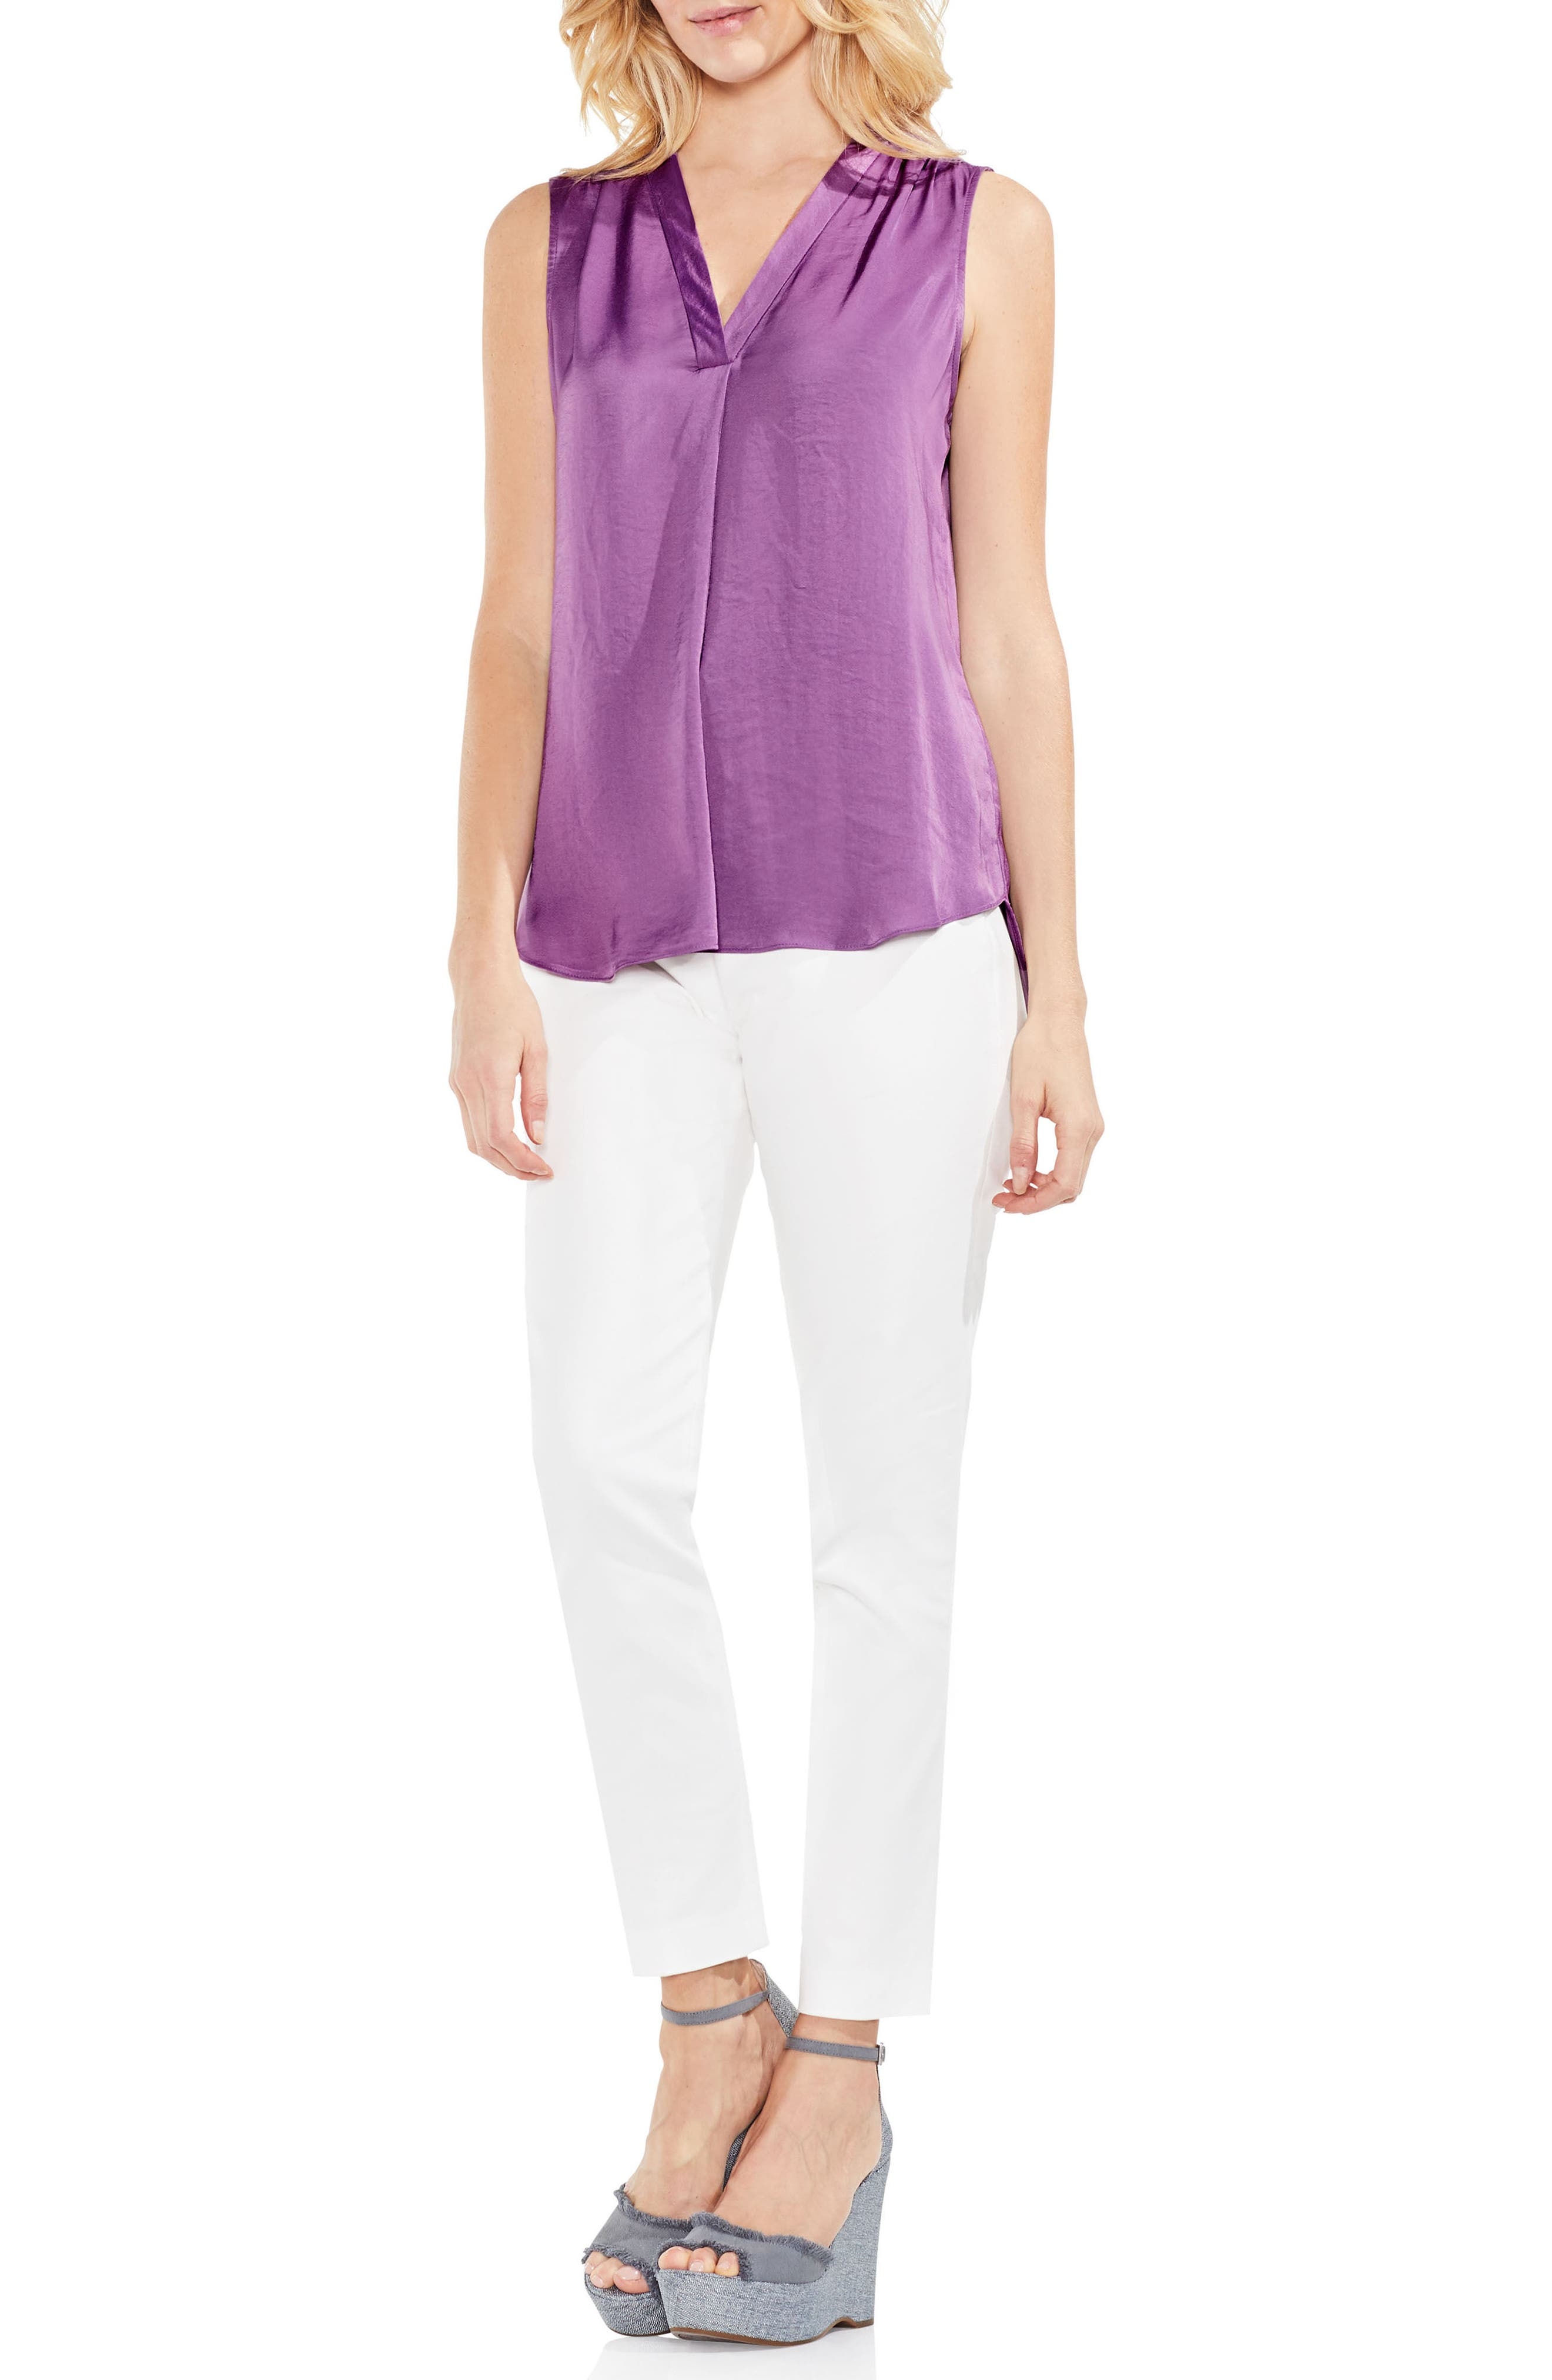 VINCE CAMUTO, Rumpled Satin Blouse, Alternate thumbnail 4, color, NEW TULIP